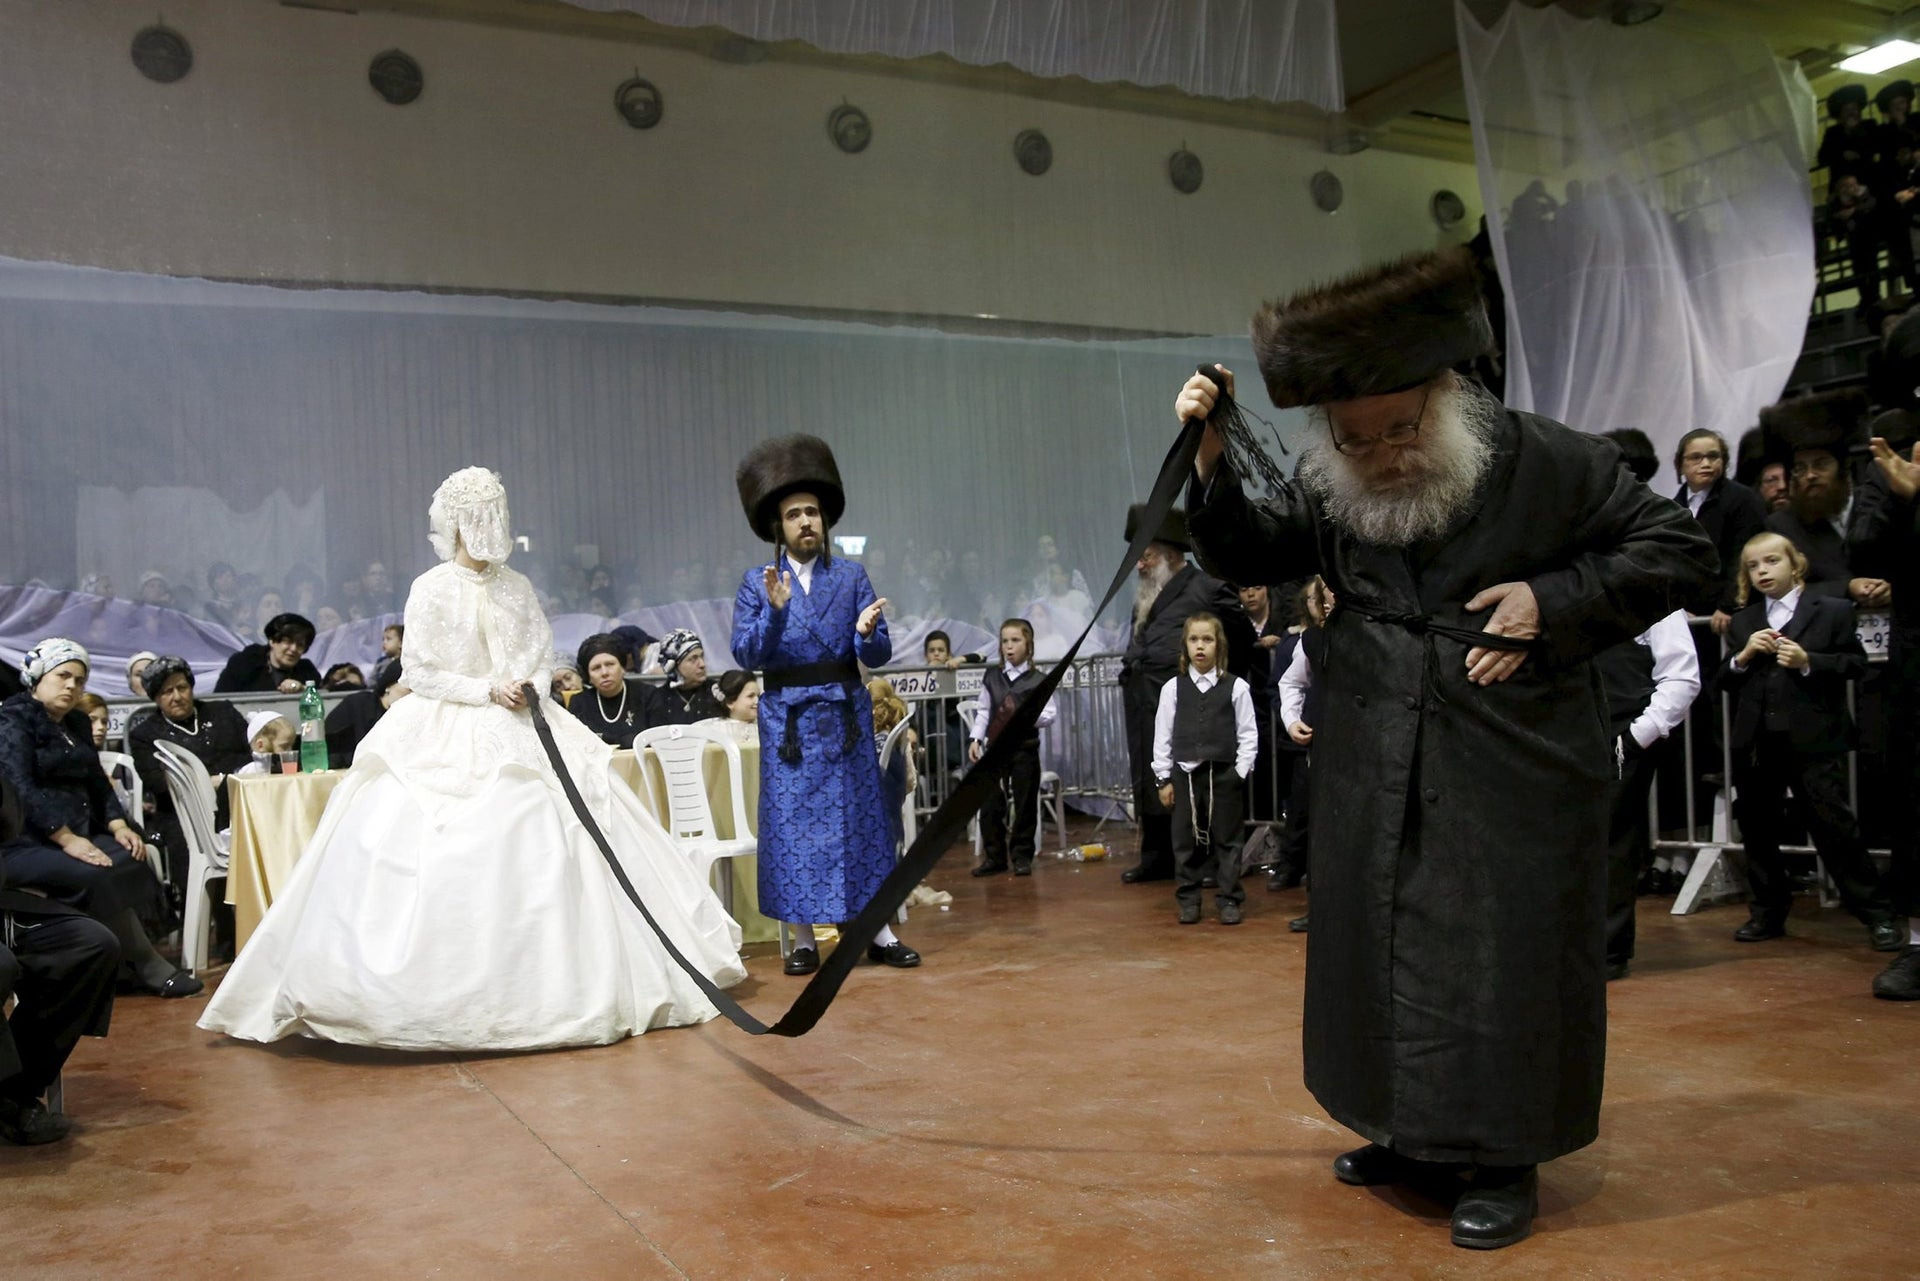 An ultra-Orthodox Jewish bride takes part in the 'mitzva tantz', the custom in which relatives dance in front of the bride after her wedding ceremony, in Netanya, Israel, early March 16, 2016. Thousands took part in the wedding of the grandson of Rabbi Yosef Dov Moshe Halberstam, religious leader of the Sanz Hasidic dynasty and the granddaughter of the religious leader of Toldos Avraham Yitzchak Hasidic dynasty, in Netanya on Tuesday night.